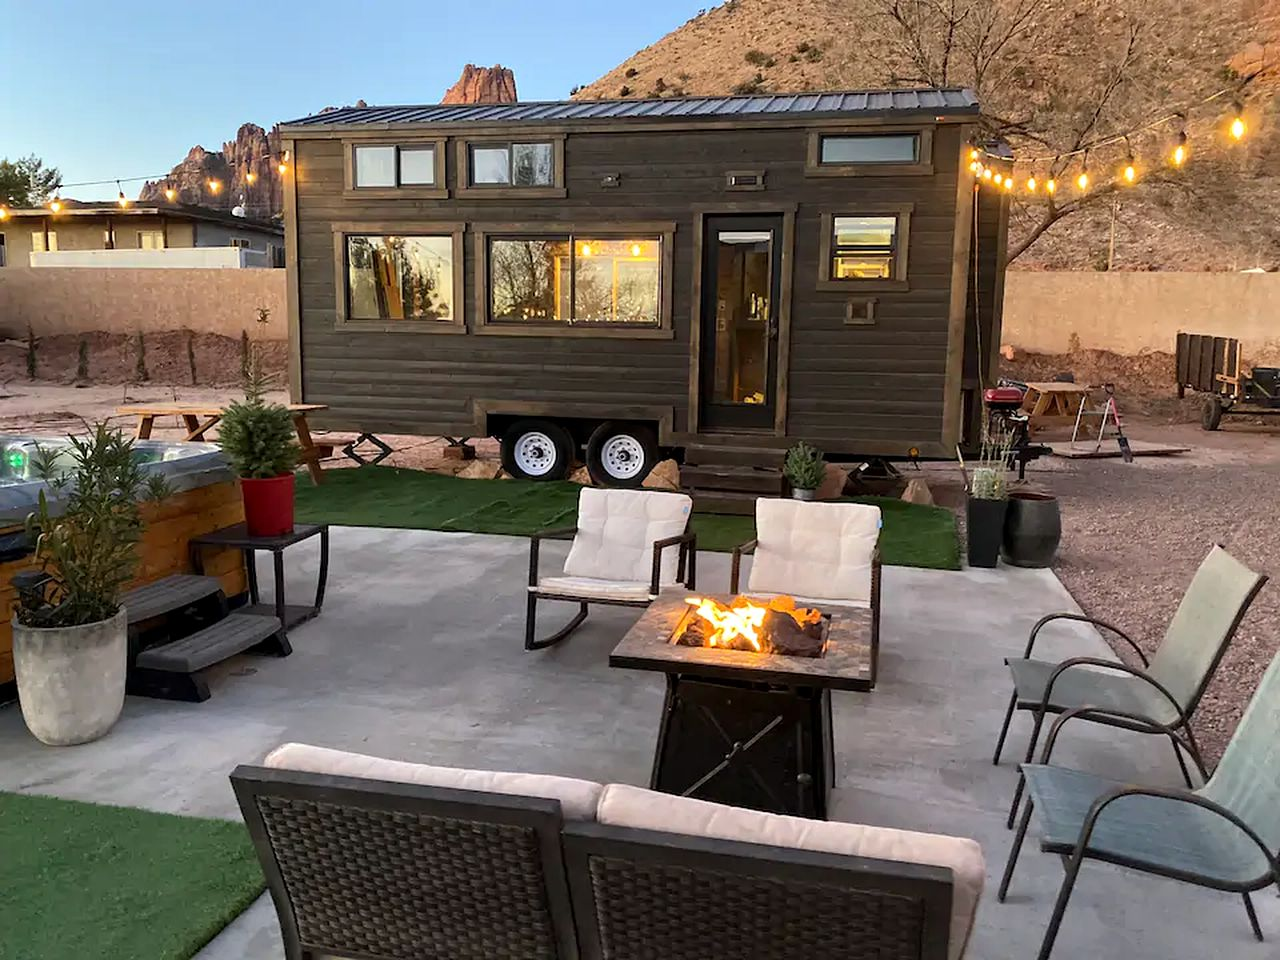 Tiny house for glamping in Utah